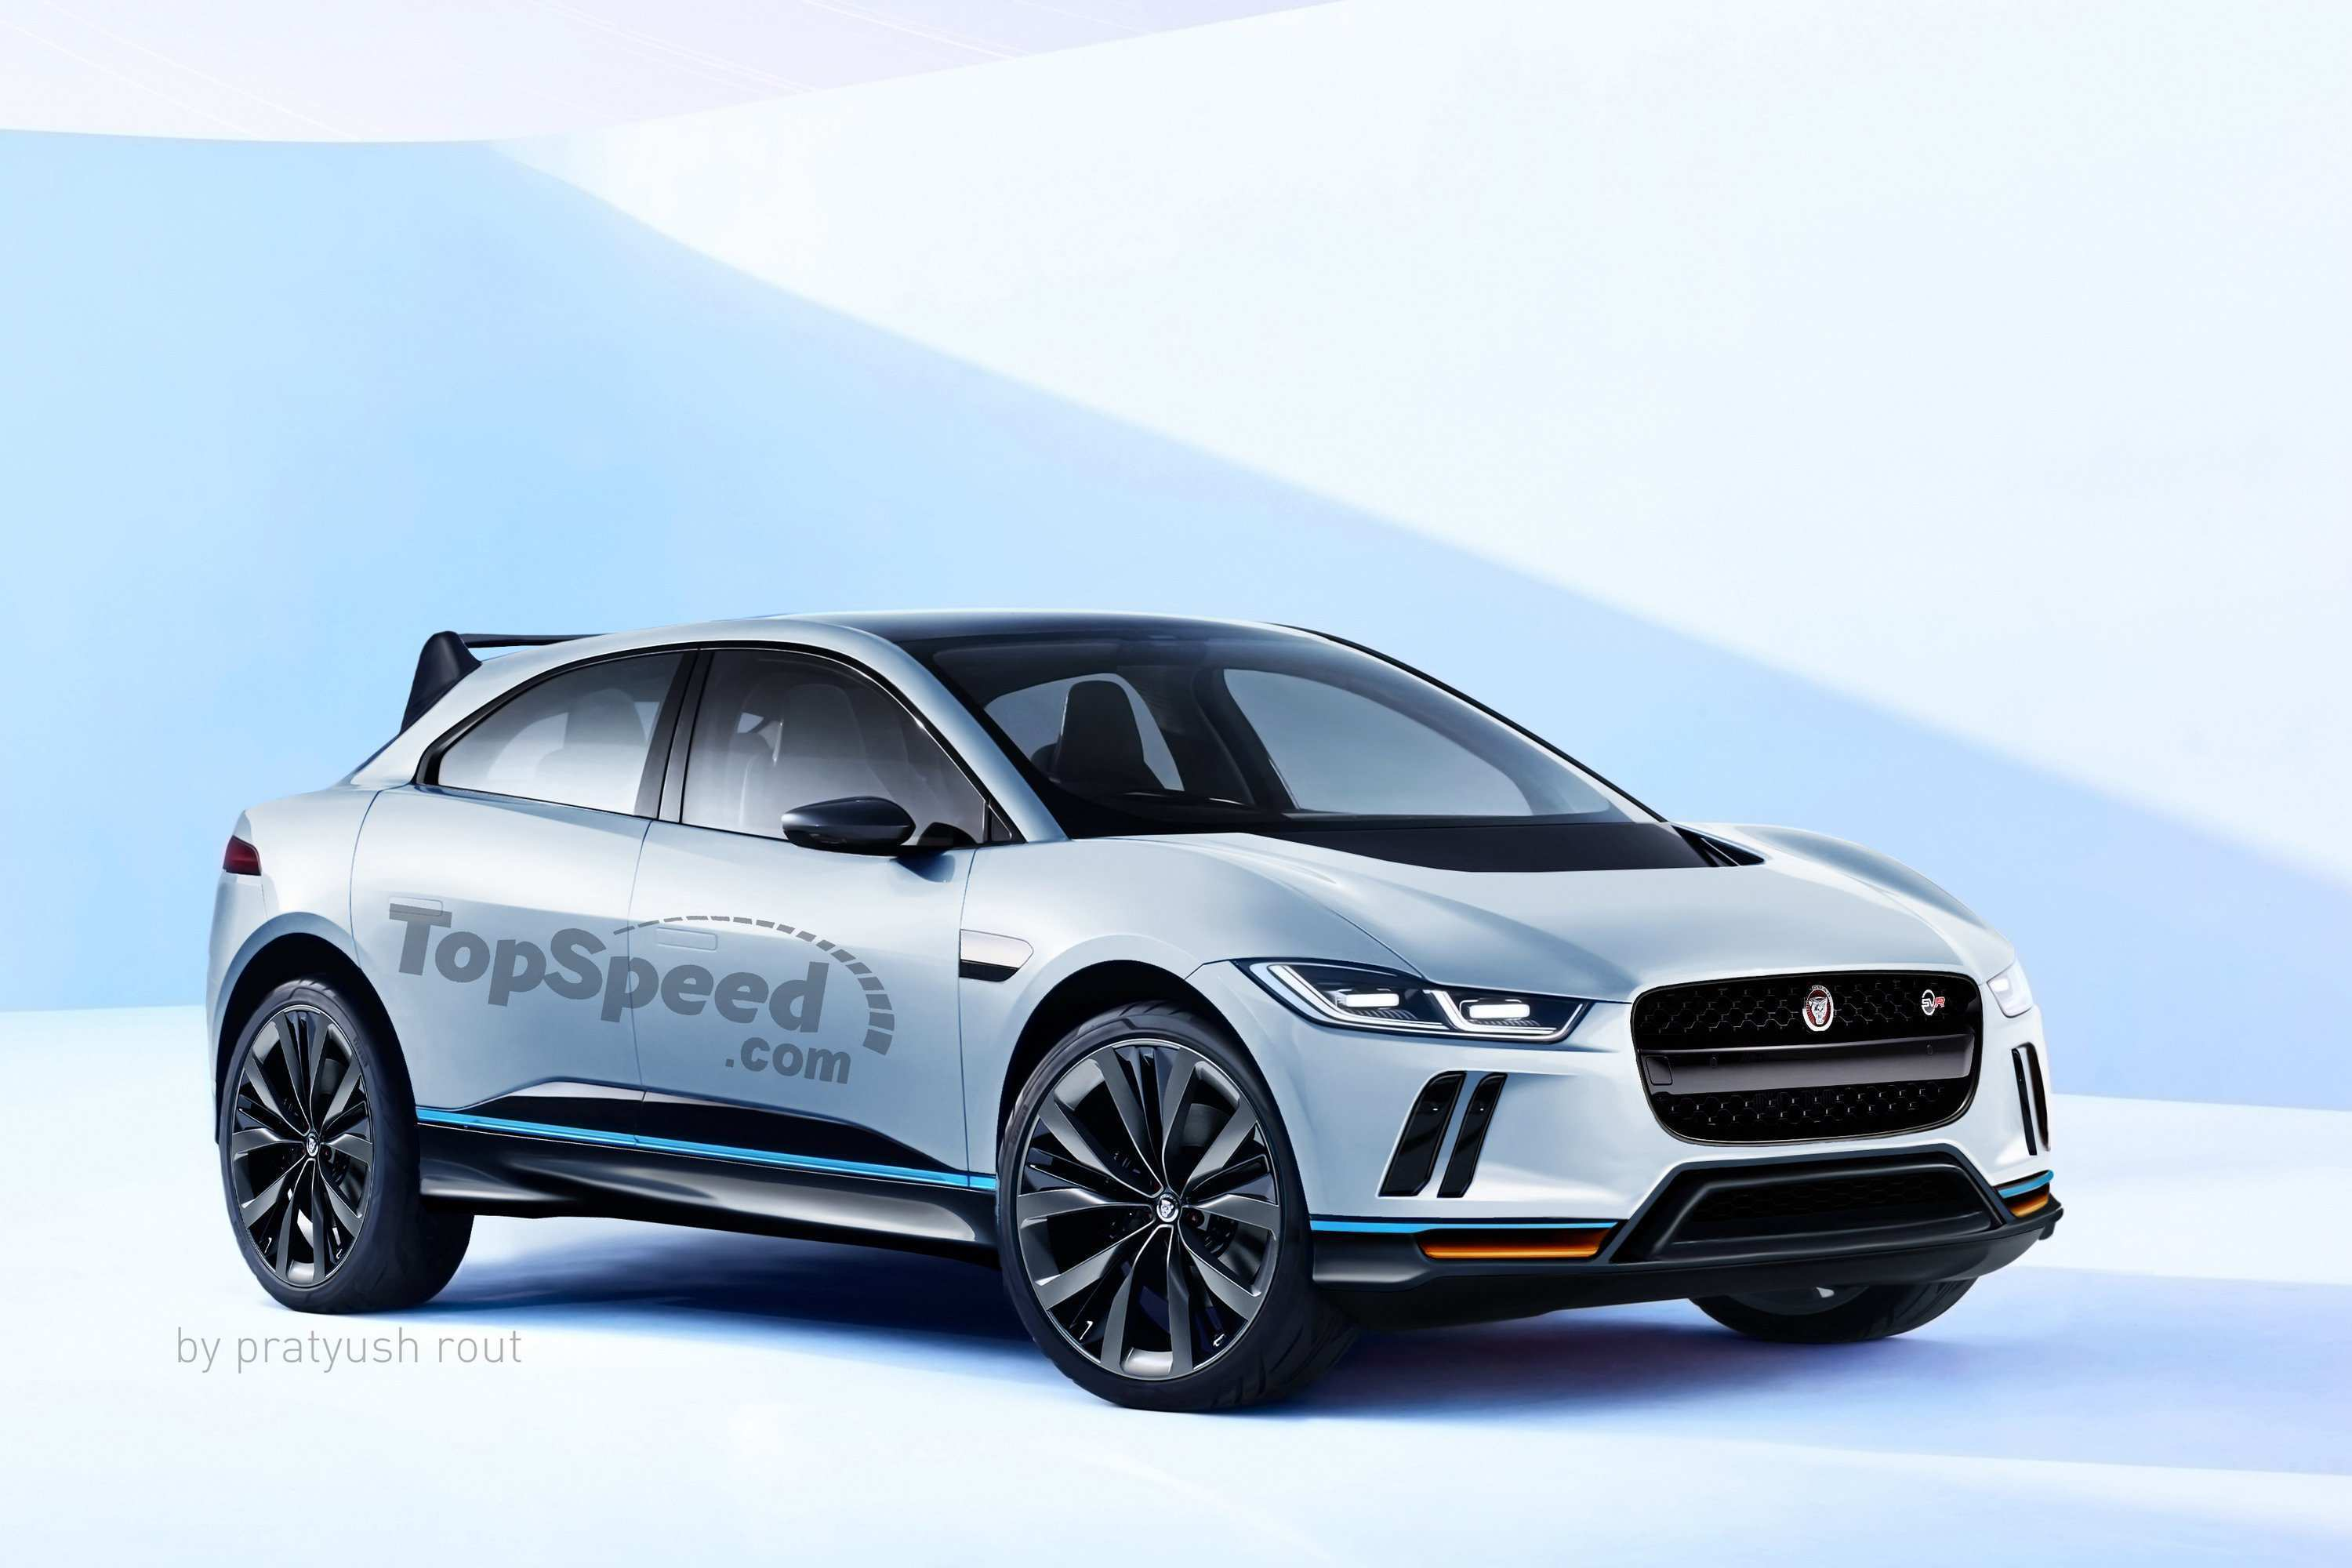 58 Concept of 2020 Jaguar I Pace Exterior Review for 2020 Jaguar I Pace Exterior